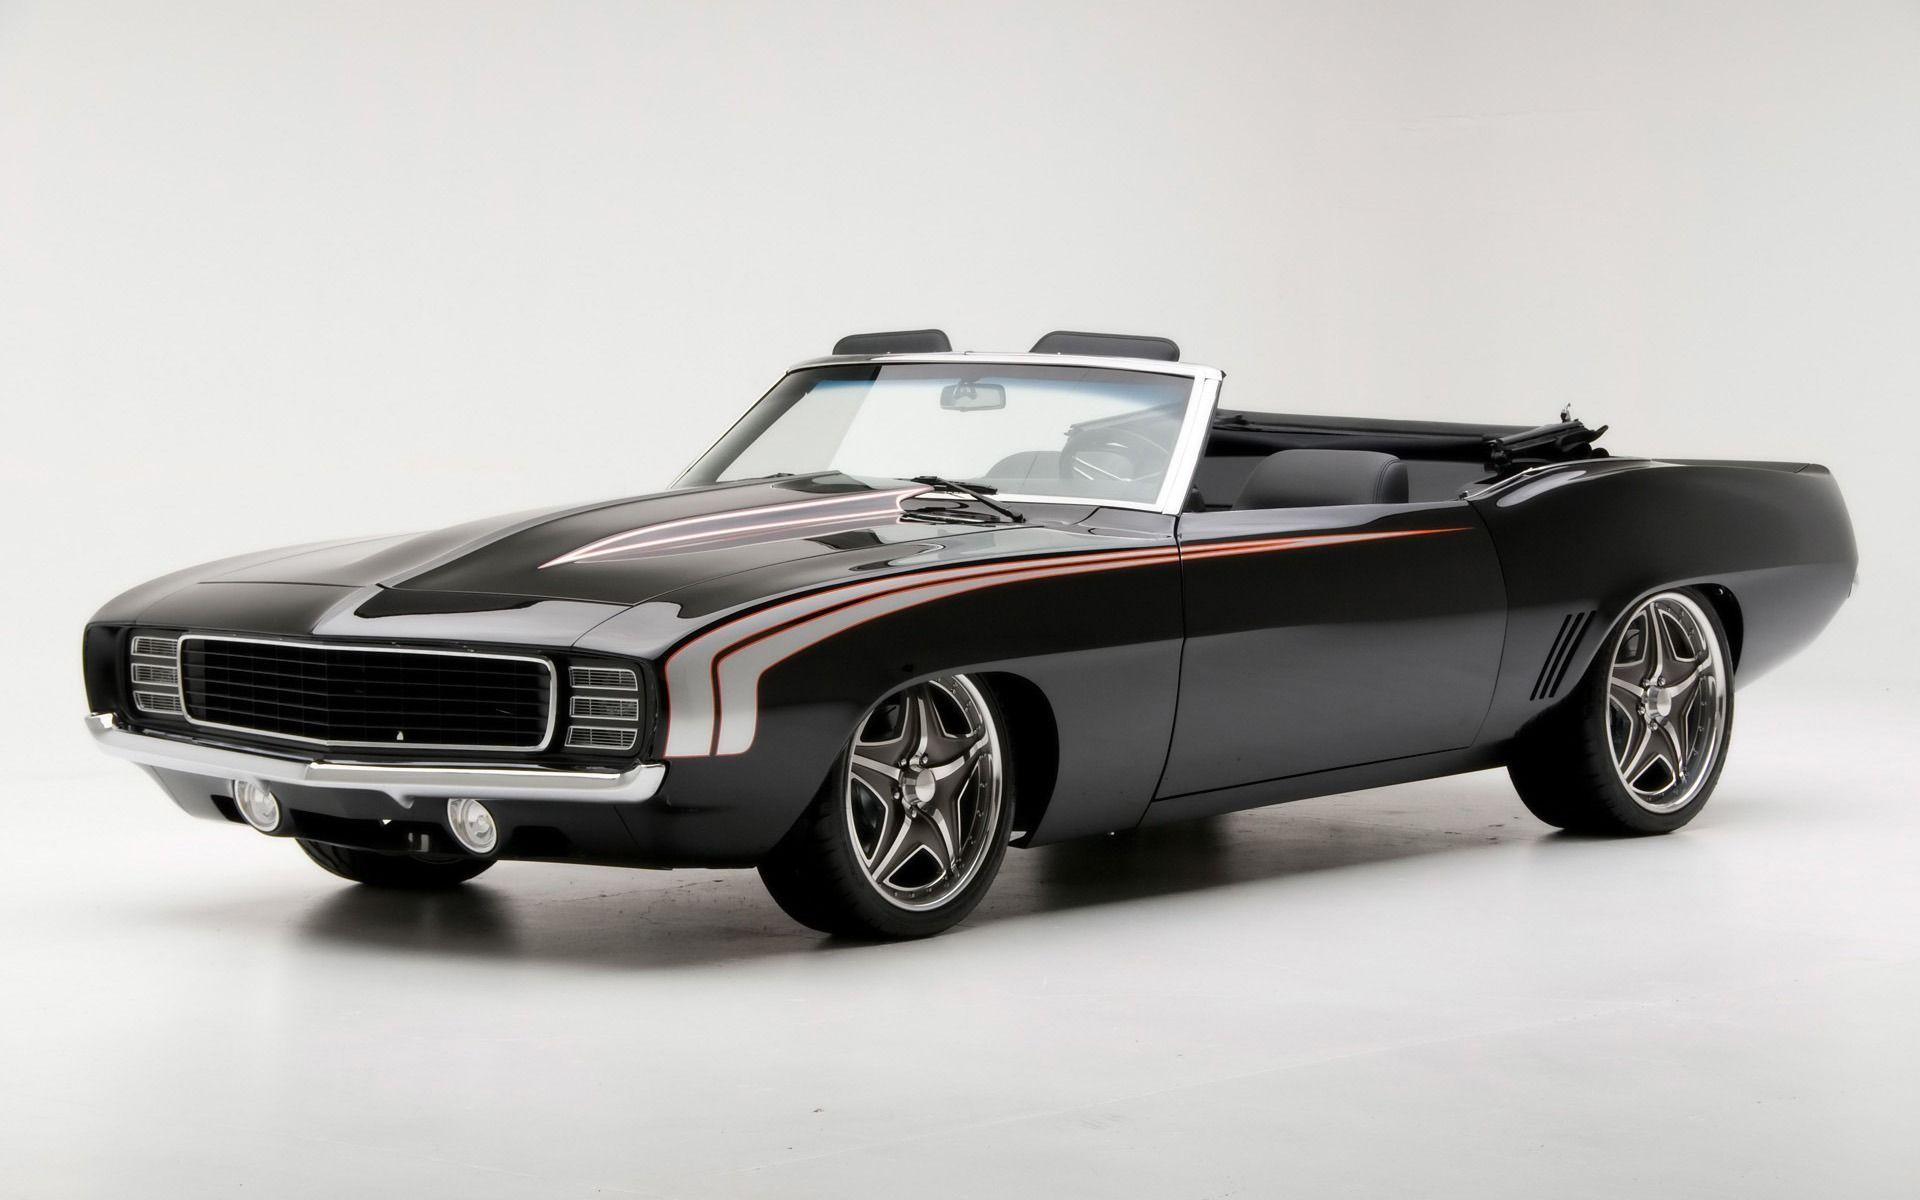 Black Muscle Car Wallpapers 9758 Full HD Wallpaper Desktop - Res ...